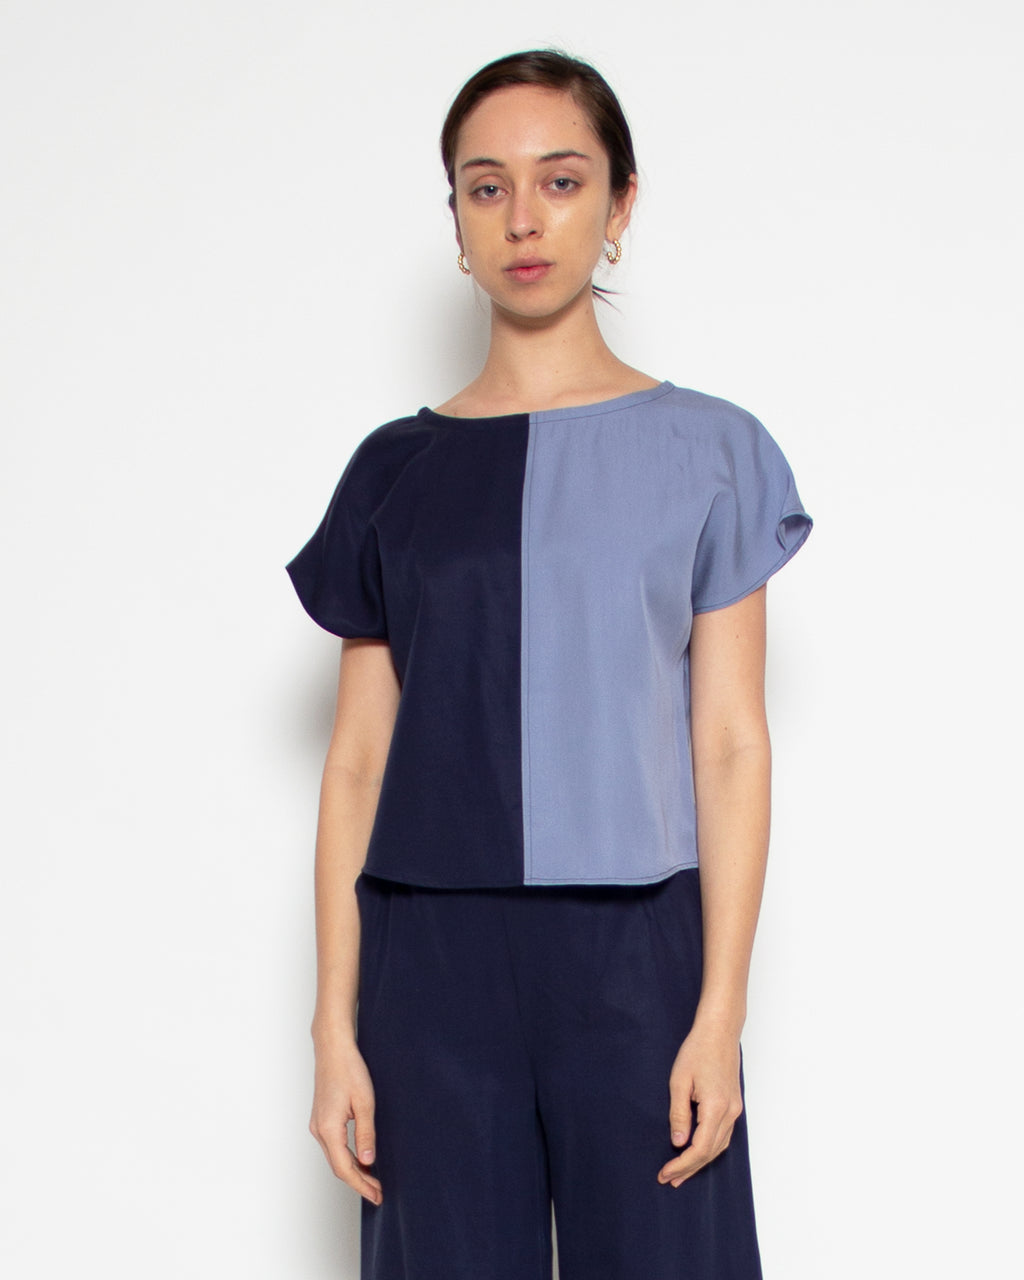 Sonia Contrast Top in Navy and Cornflower